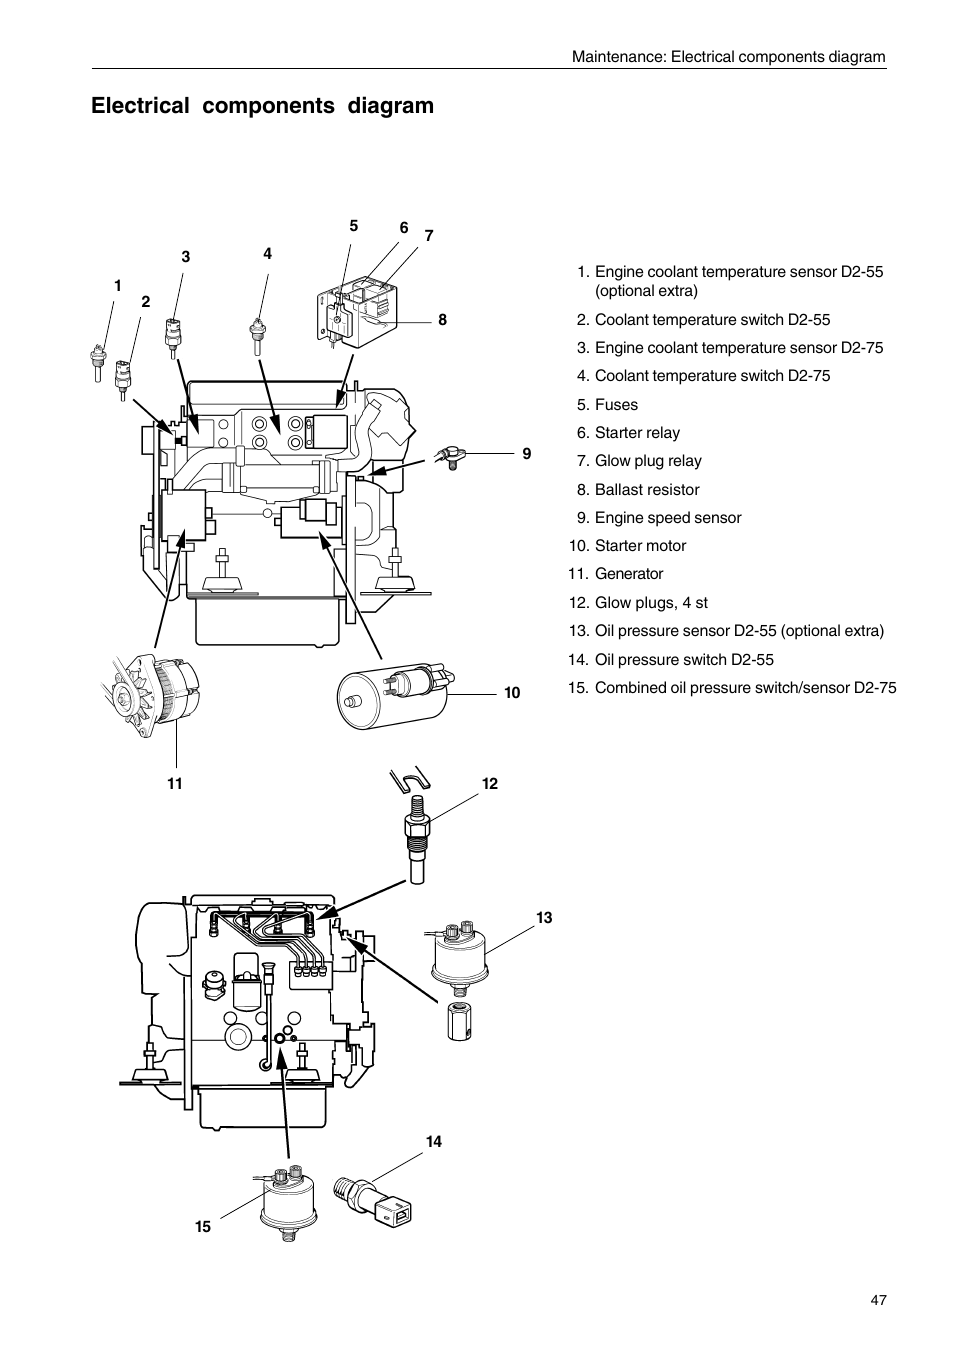 electrical components diagram volvo penta d2 75 user manual page rh manualsdir com Wildgame Innovations Manuals Wildgame Innovations Manuals